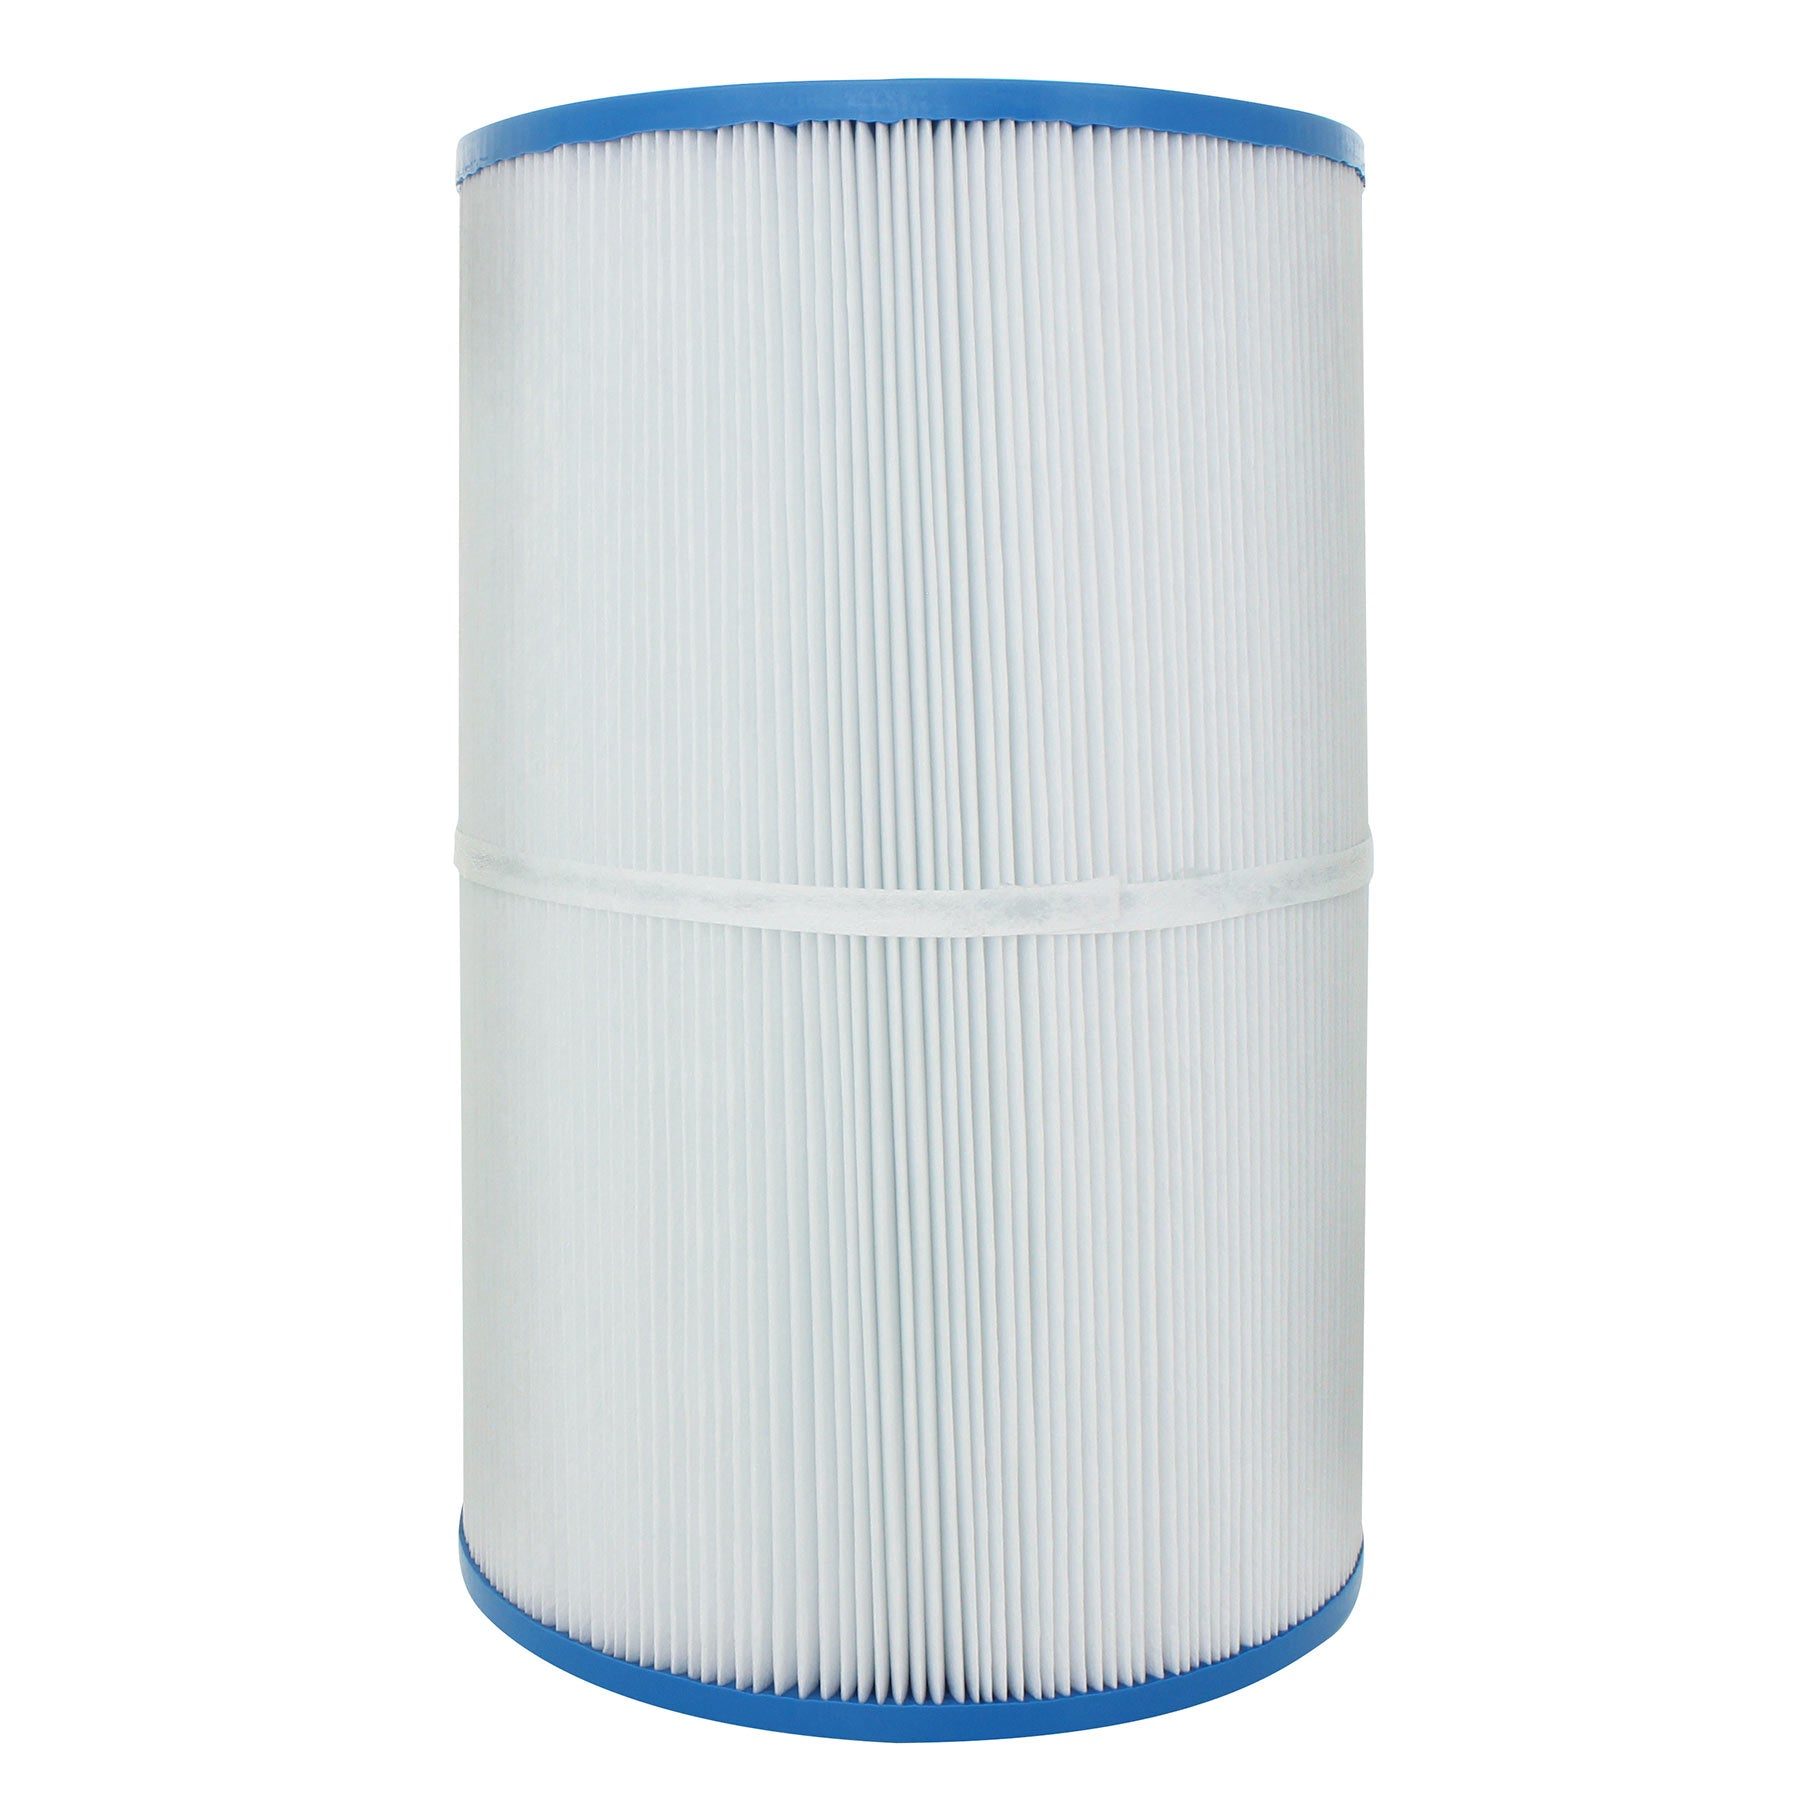 Replaces Unicel C-8380, Pleatco PSD85-2002 • Hot Tub & Spa Filter Cartridge-Filter Cartridge-FilterDeal.com